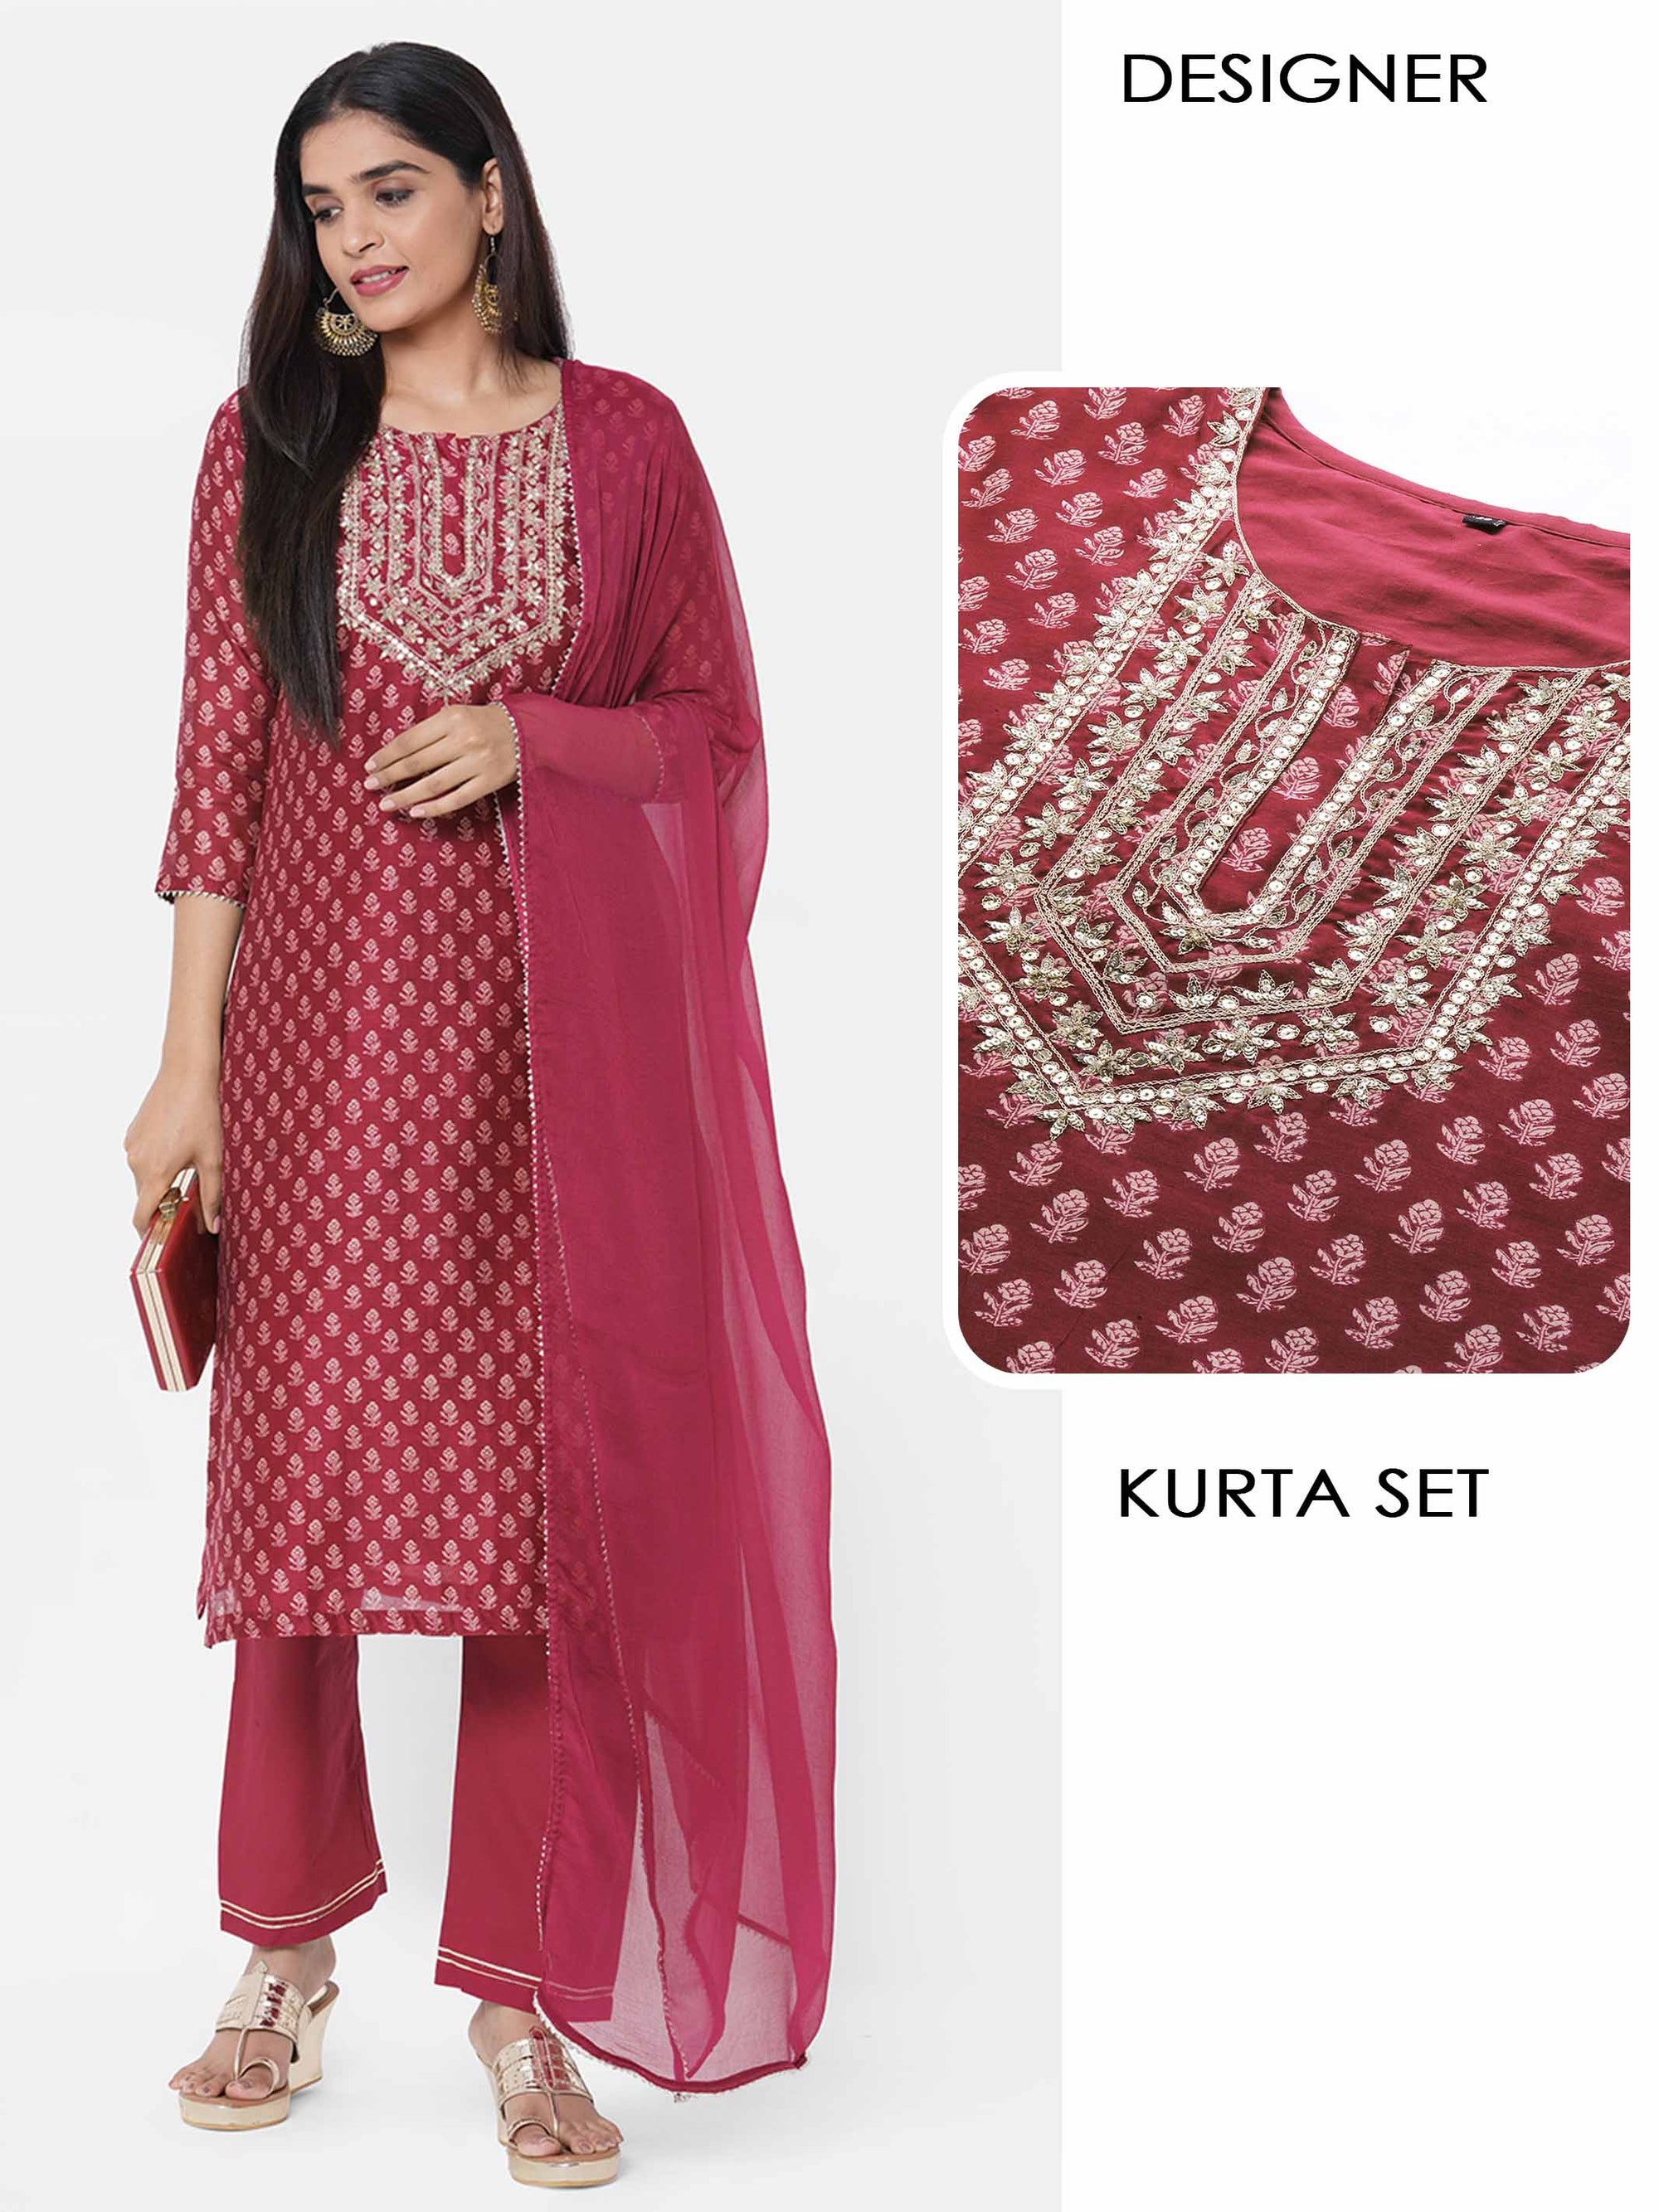 Floral Printed & Embellished Kurta with Solid Pant with solid Dupatta - Maroon